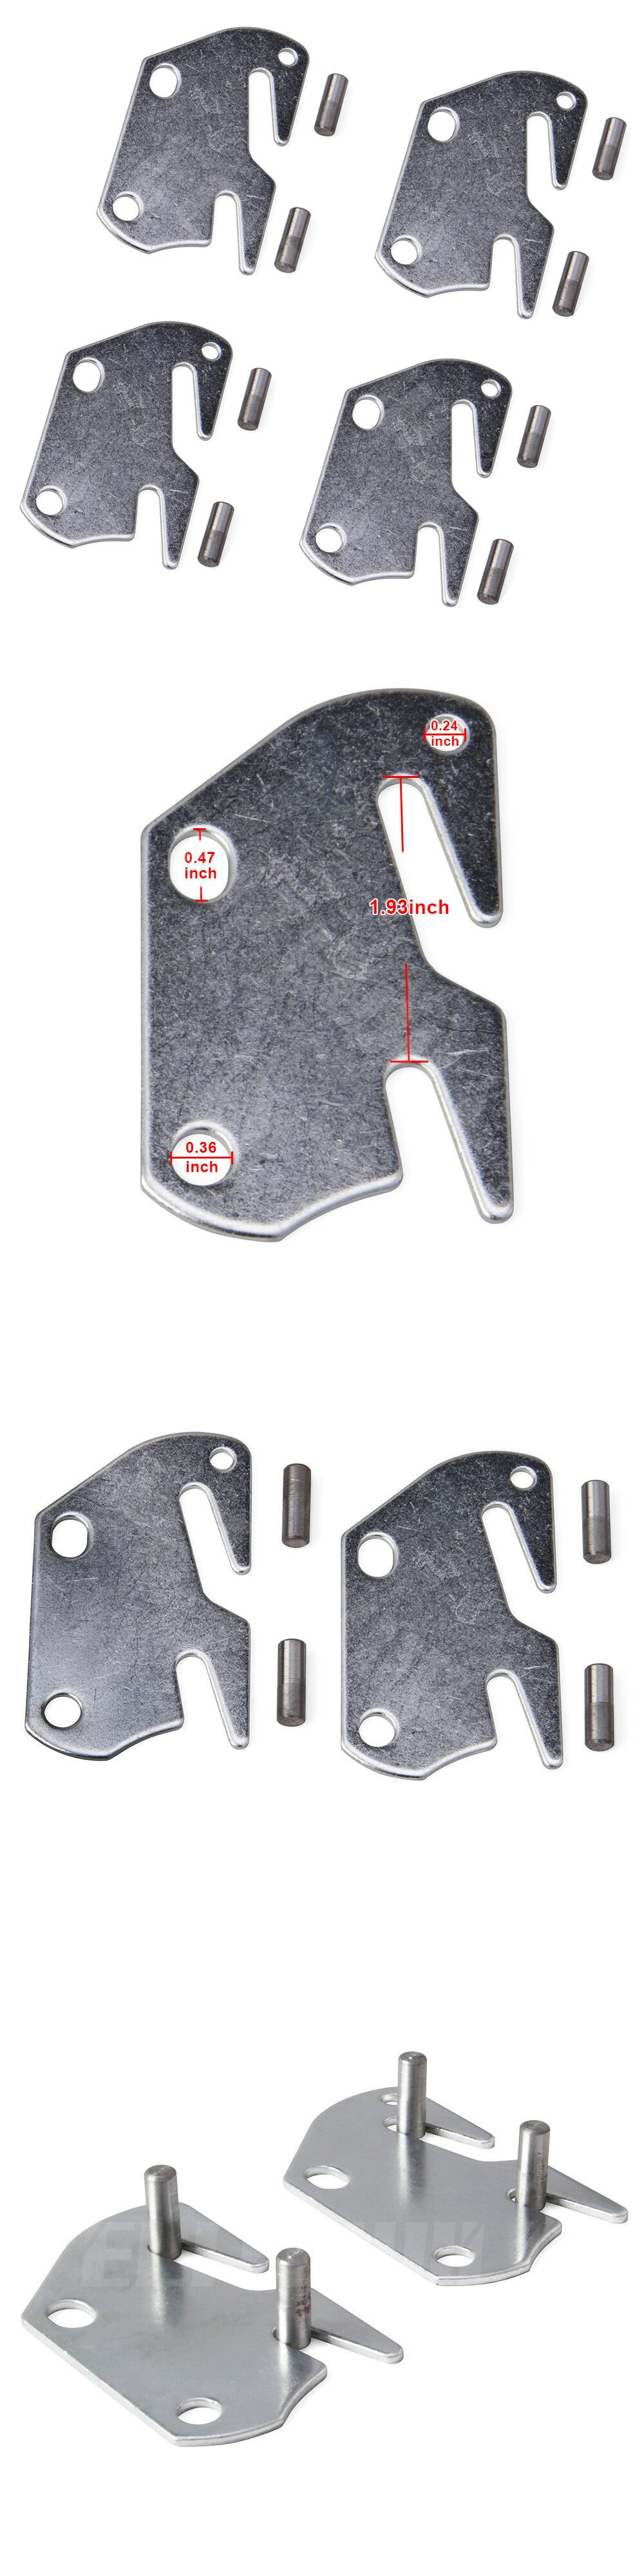 Details about Rail Frame Bracket Claw 10 Hook Plates Fit